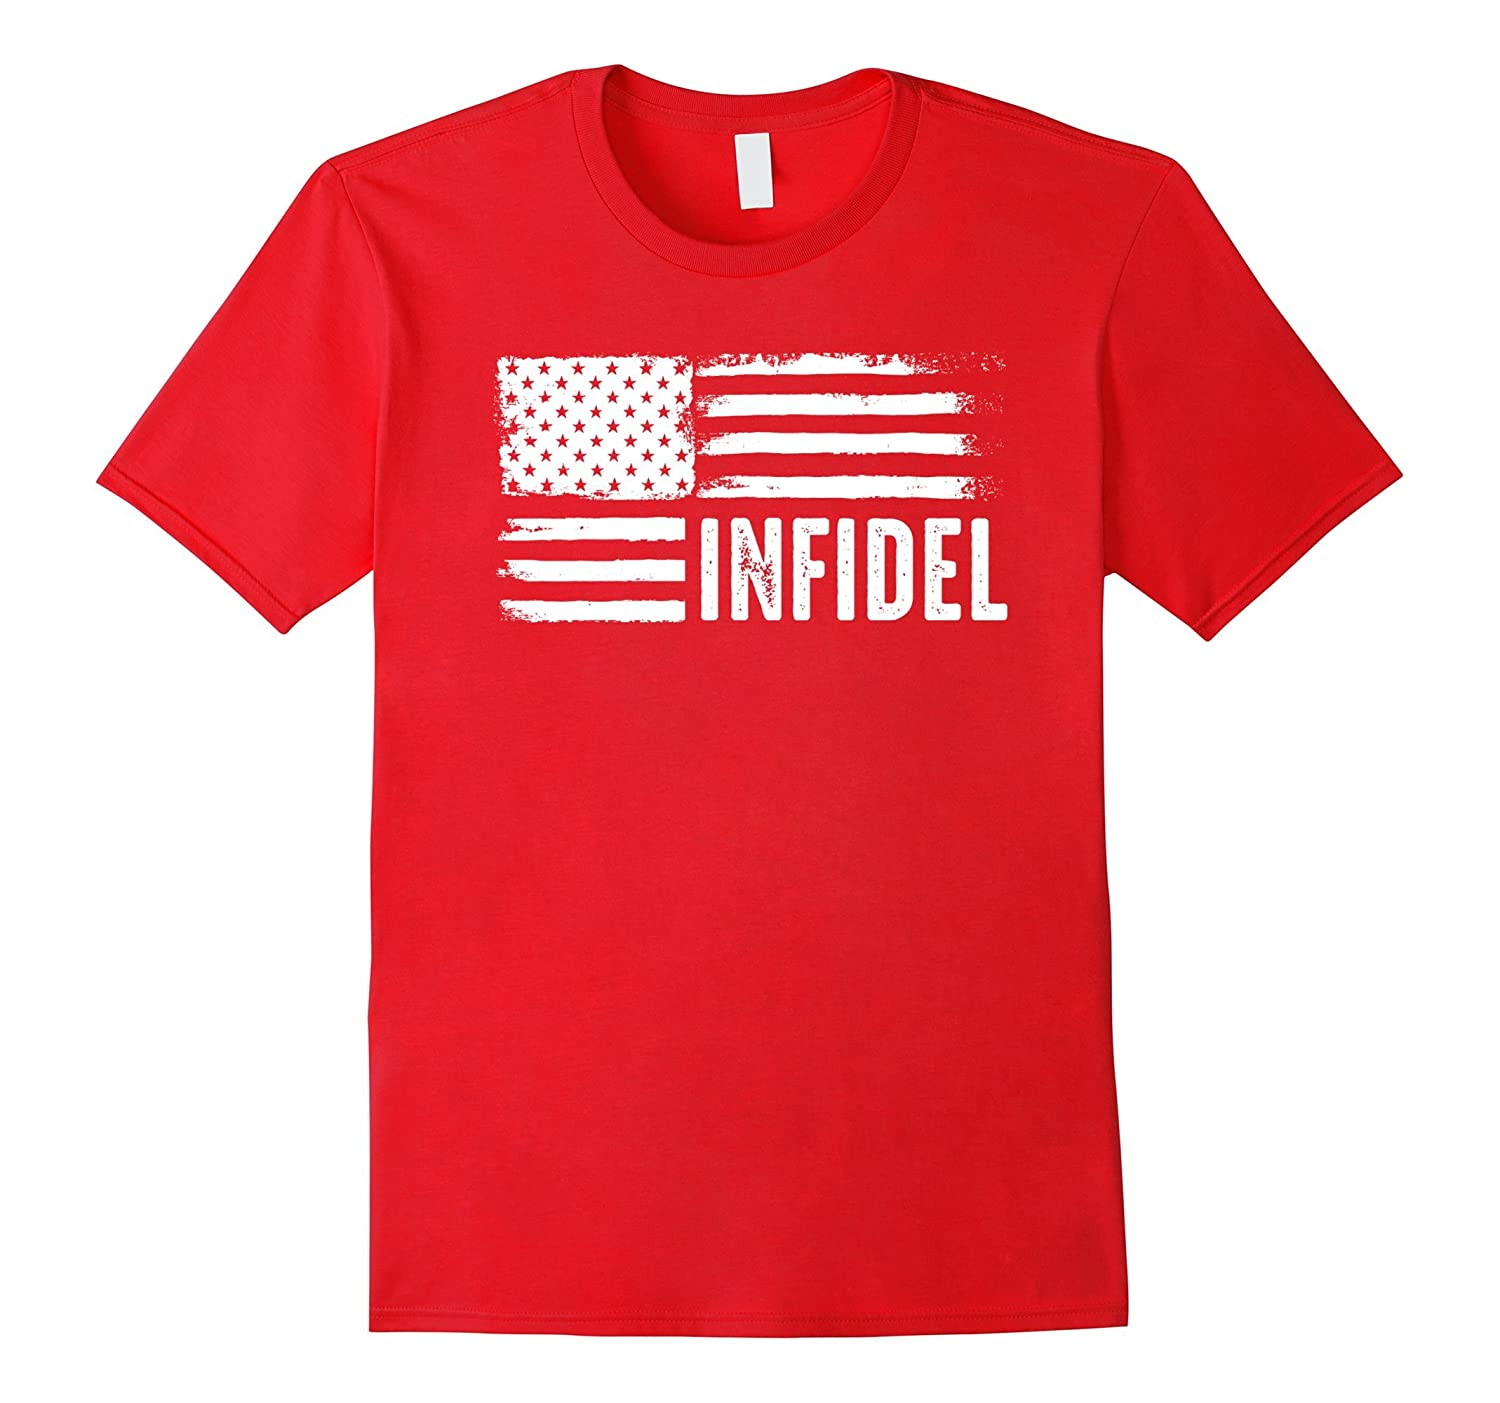 American Infidel Shirt us armed forces army Anti Terrorist-BN